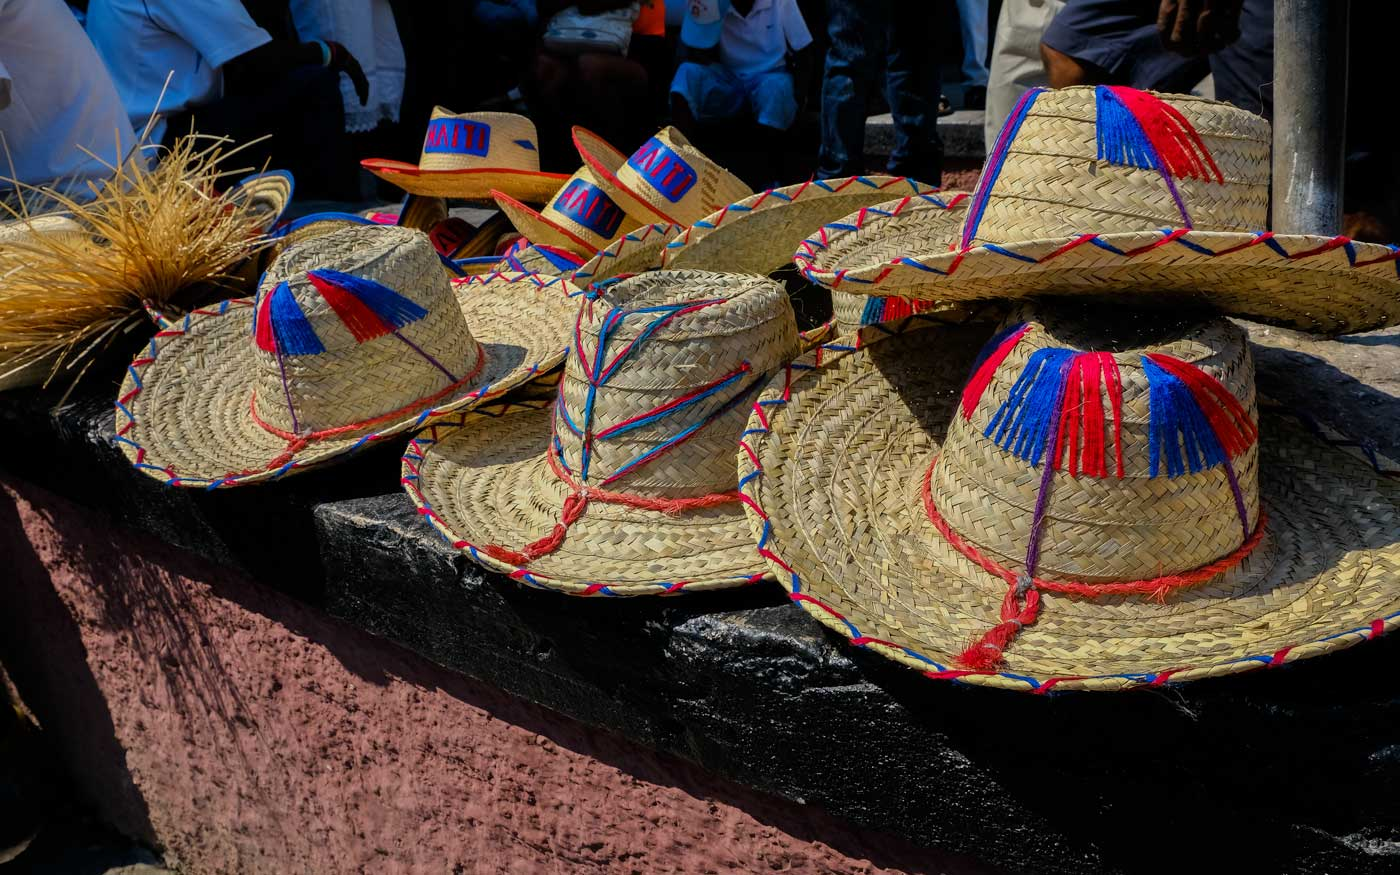 Straw hats on display at the Merch en Fer Iron Market, Port-au-Prince, Haiti